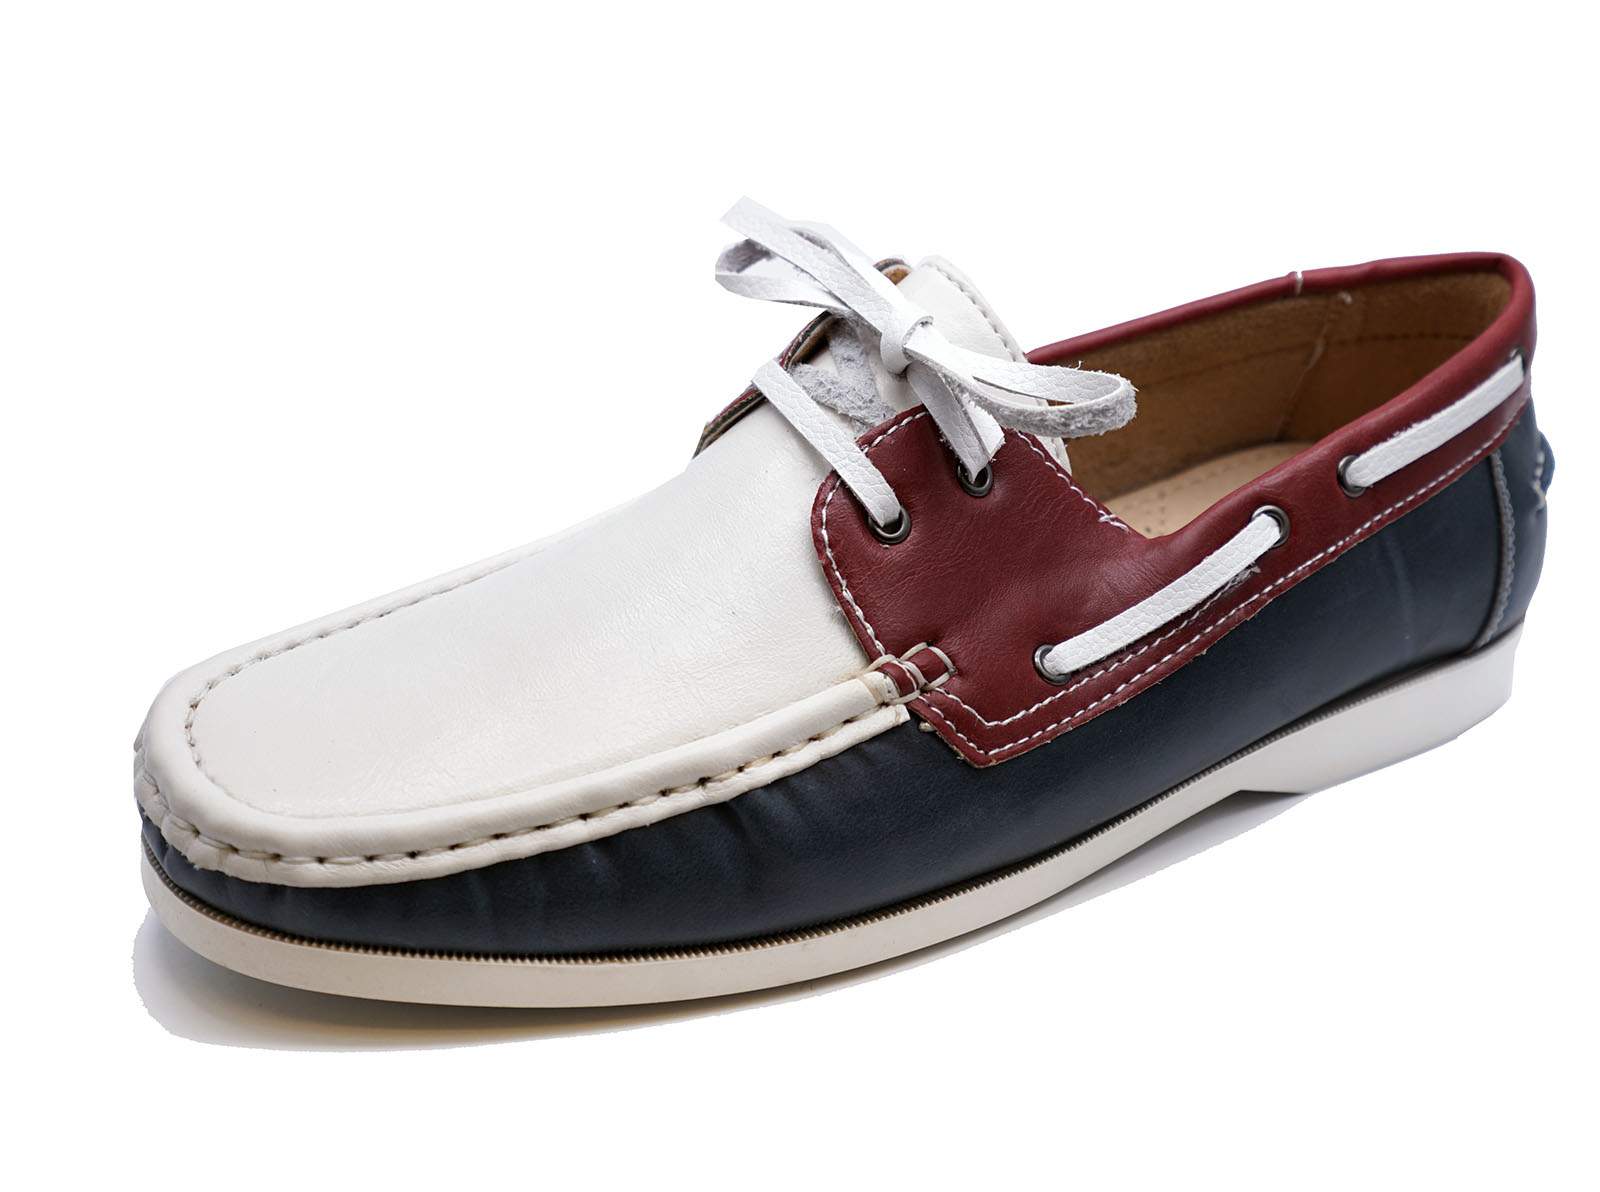 mens white yacht loafers driving lace up moccasin deck